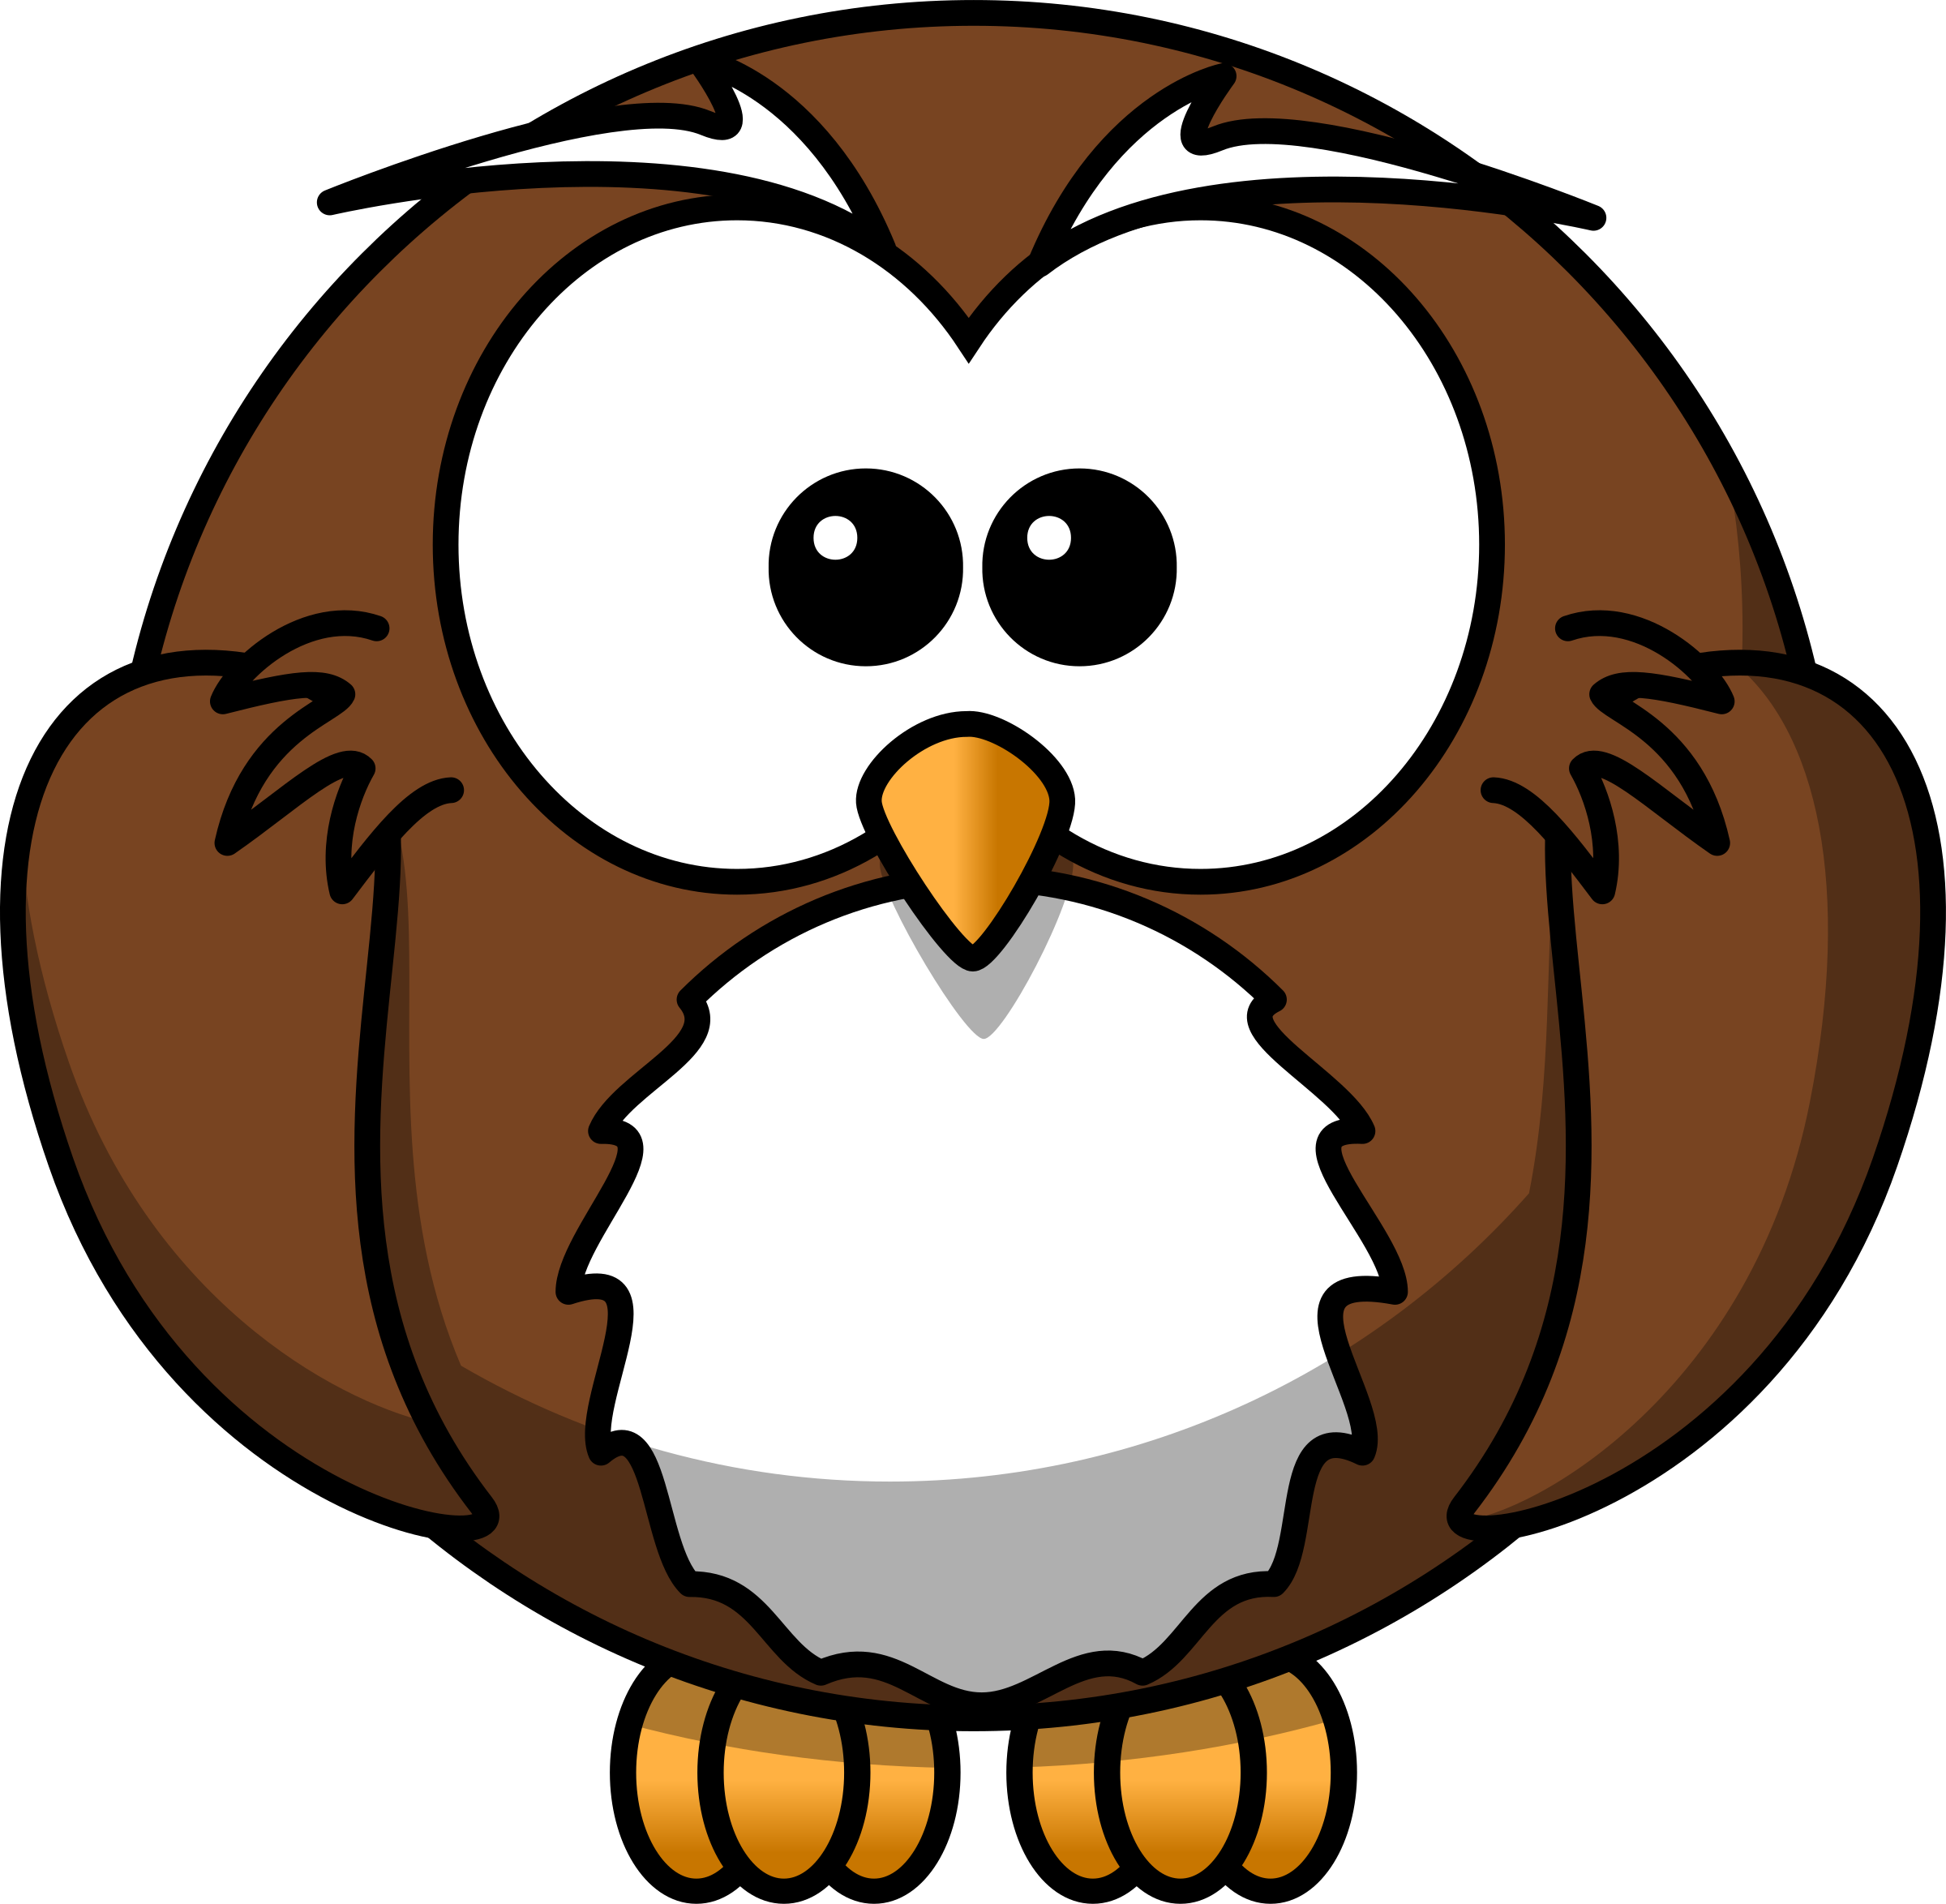 Owl clip art transparent background. Cartoon icons png free